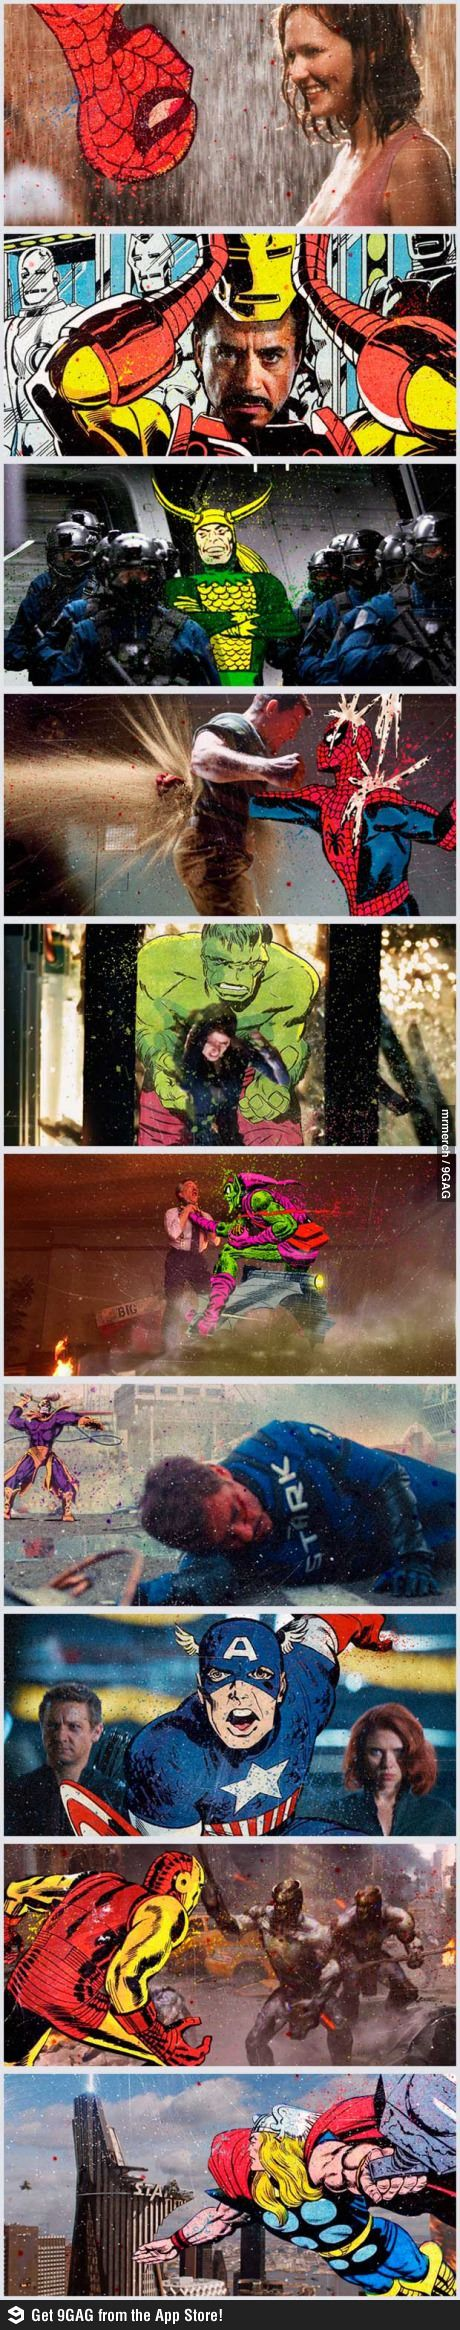 Marvel Movies; Crossover between movies and its comics. EPIC.